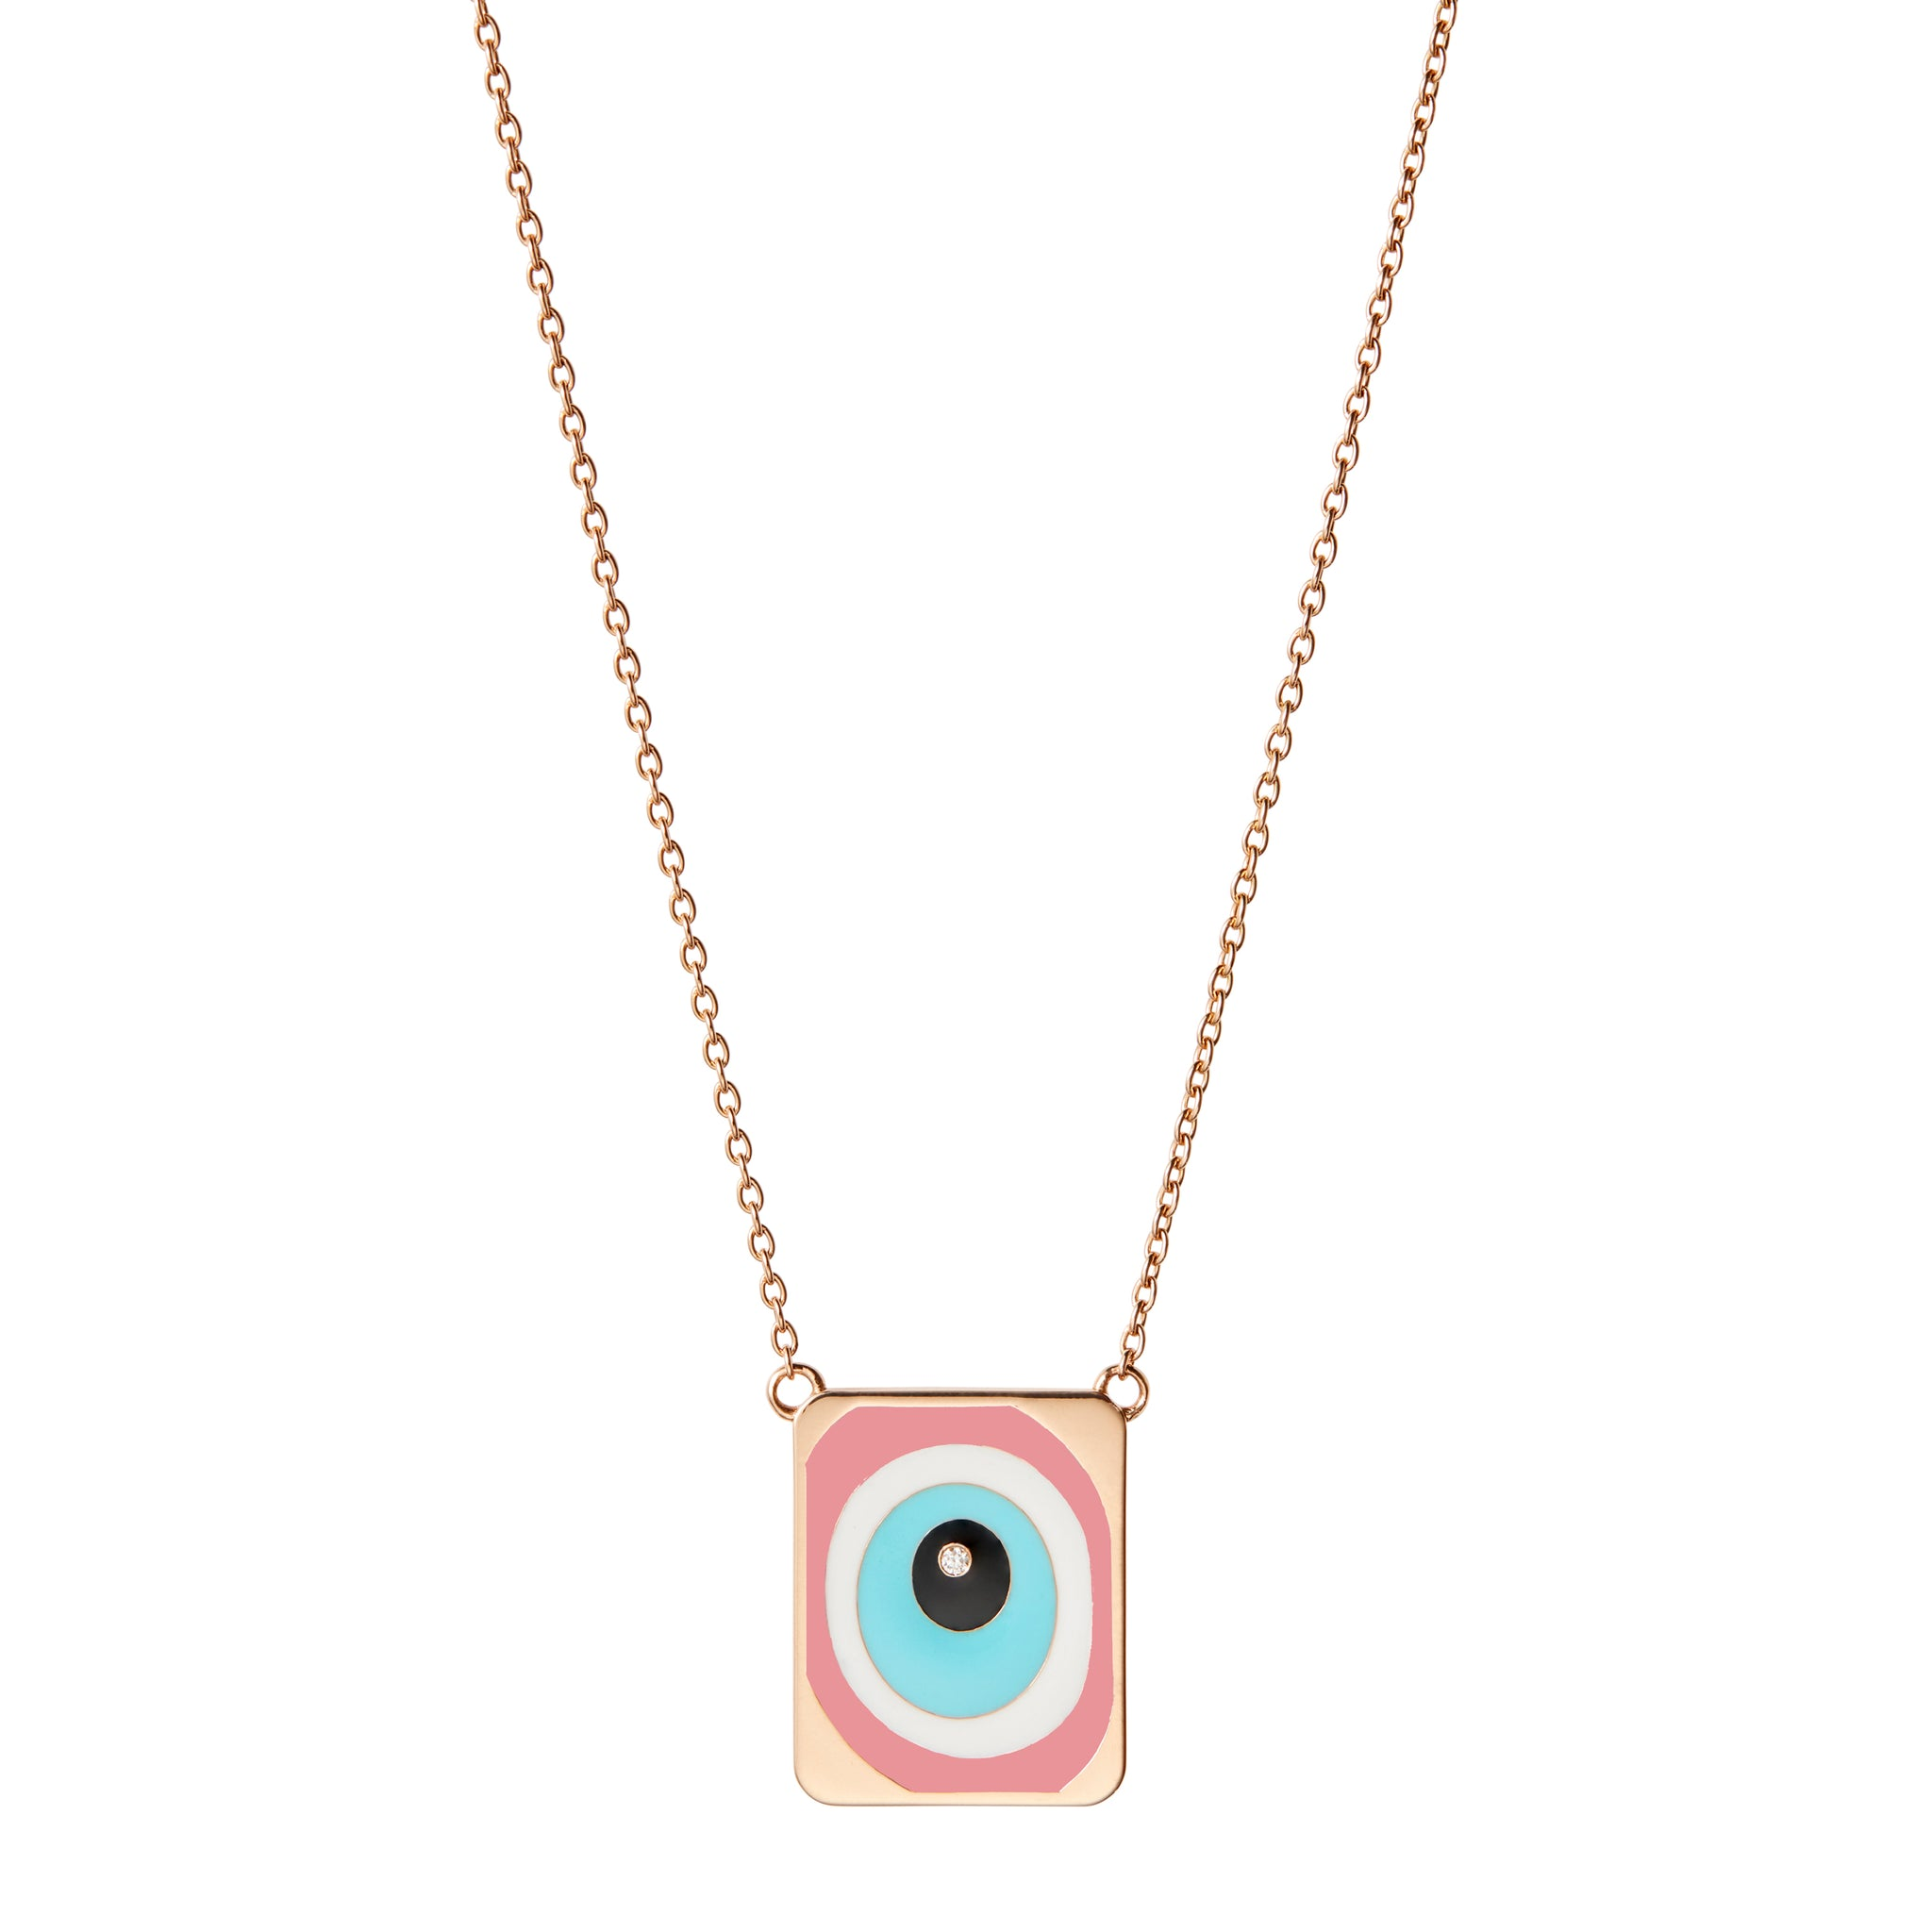 Pink Evil Eye Necklace with Single Diamond